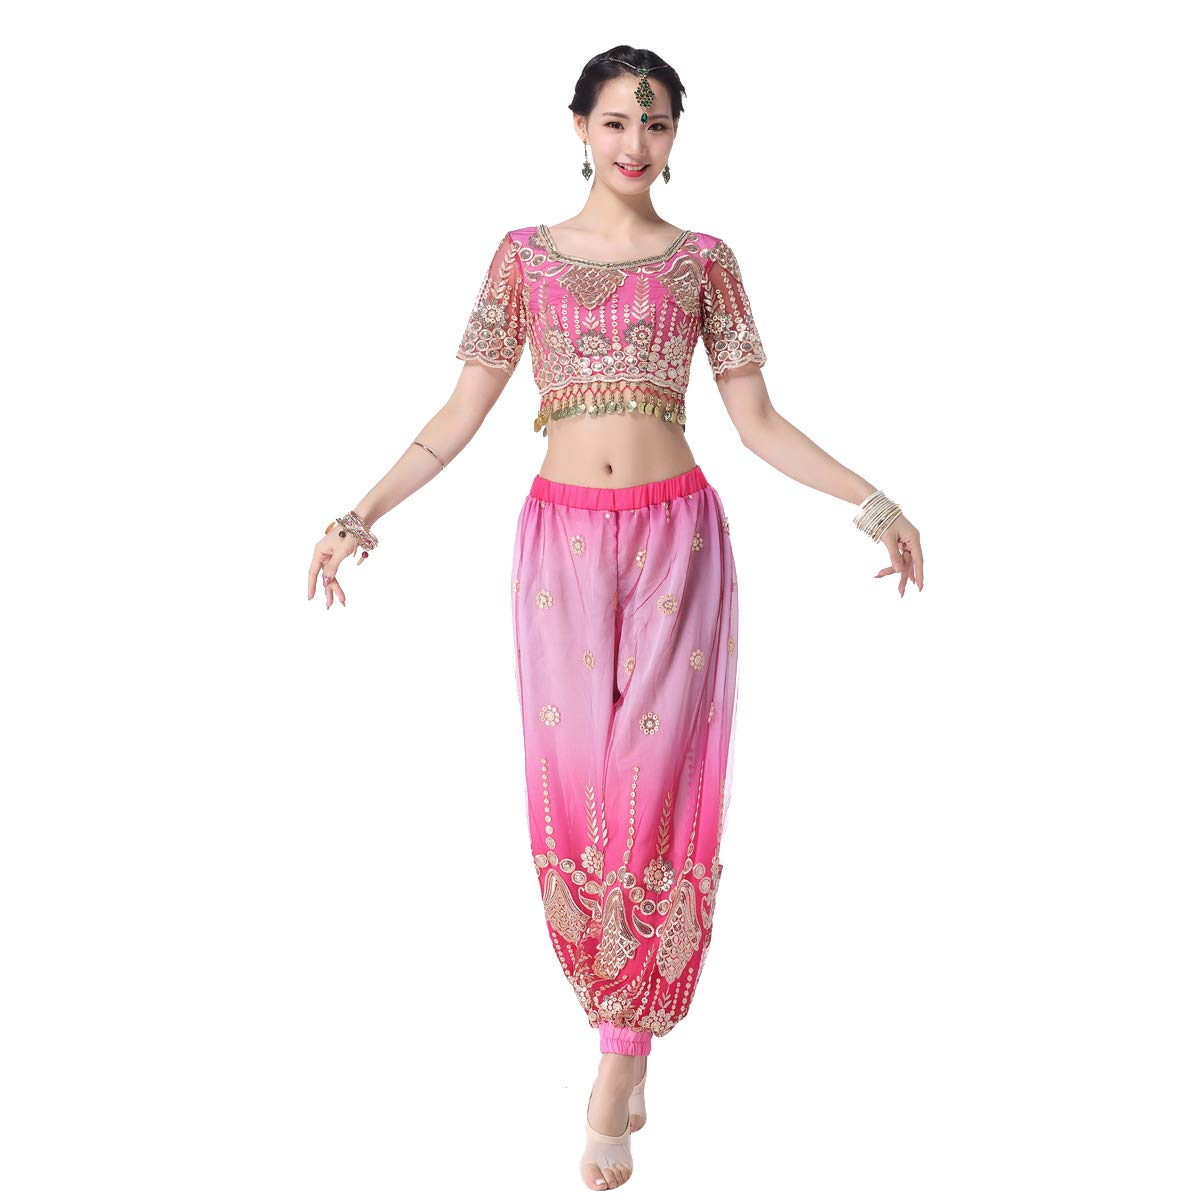 Belly Dance Bollywood Costume Aladdin Costumes Harem Pants for Women(F,M) Pink by MISI CHAO